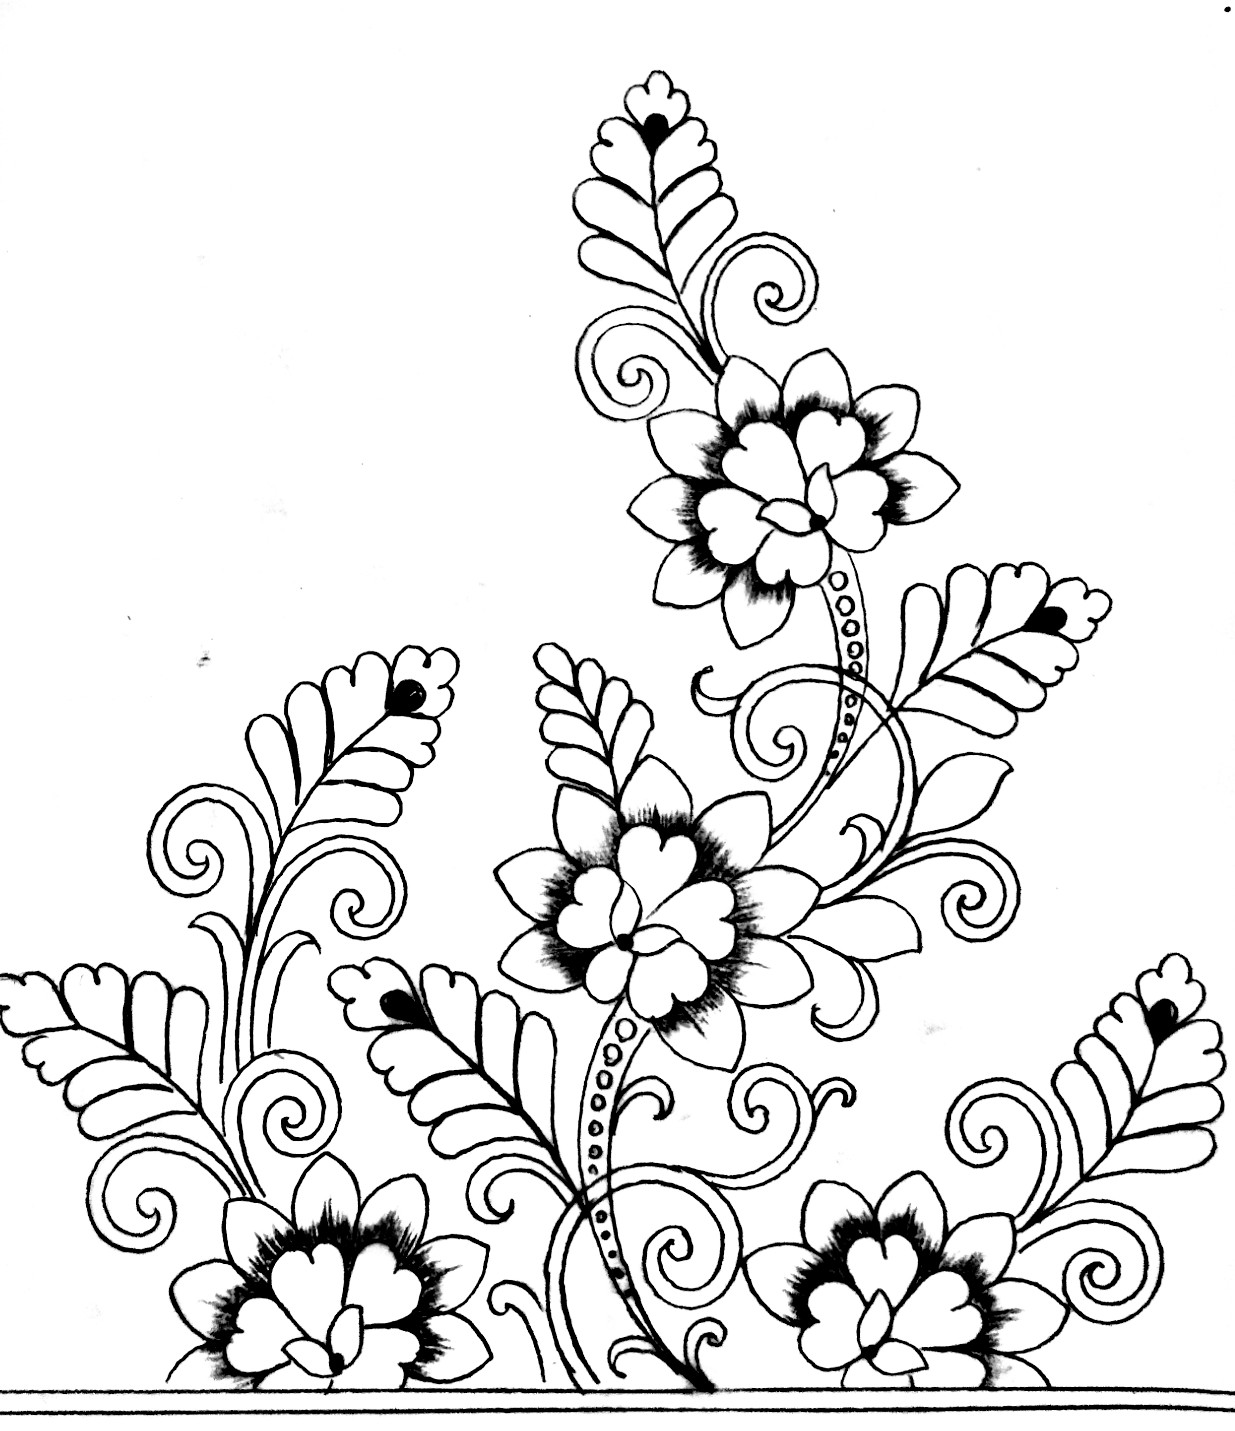 How to draw an easy hand embroidery flowers designs/hand embroidery flowers designs images free download